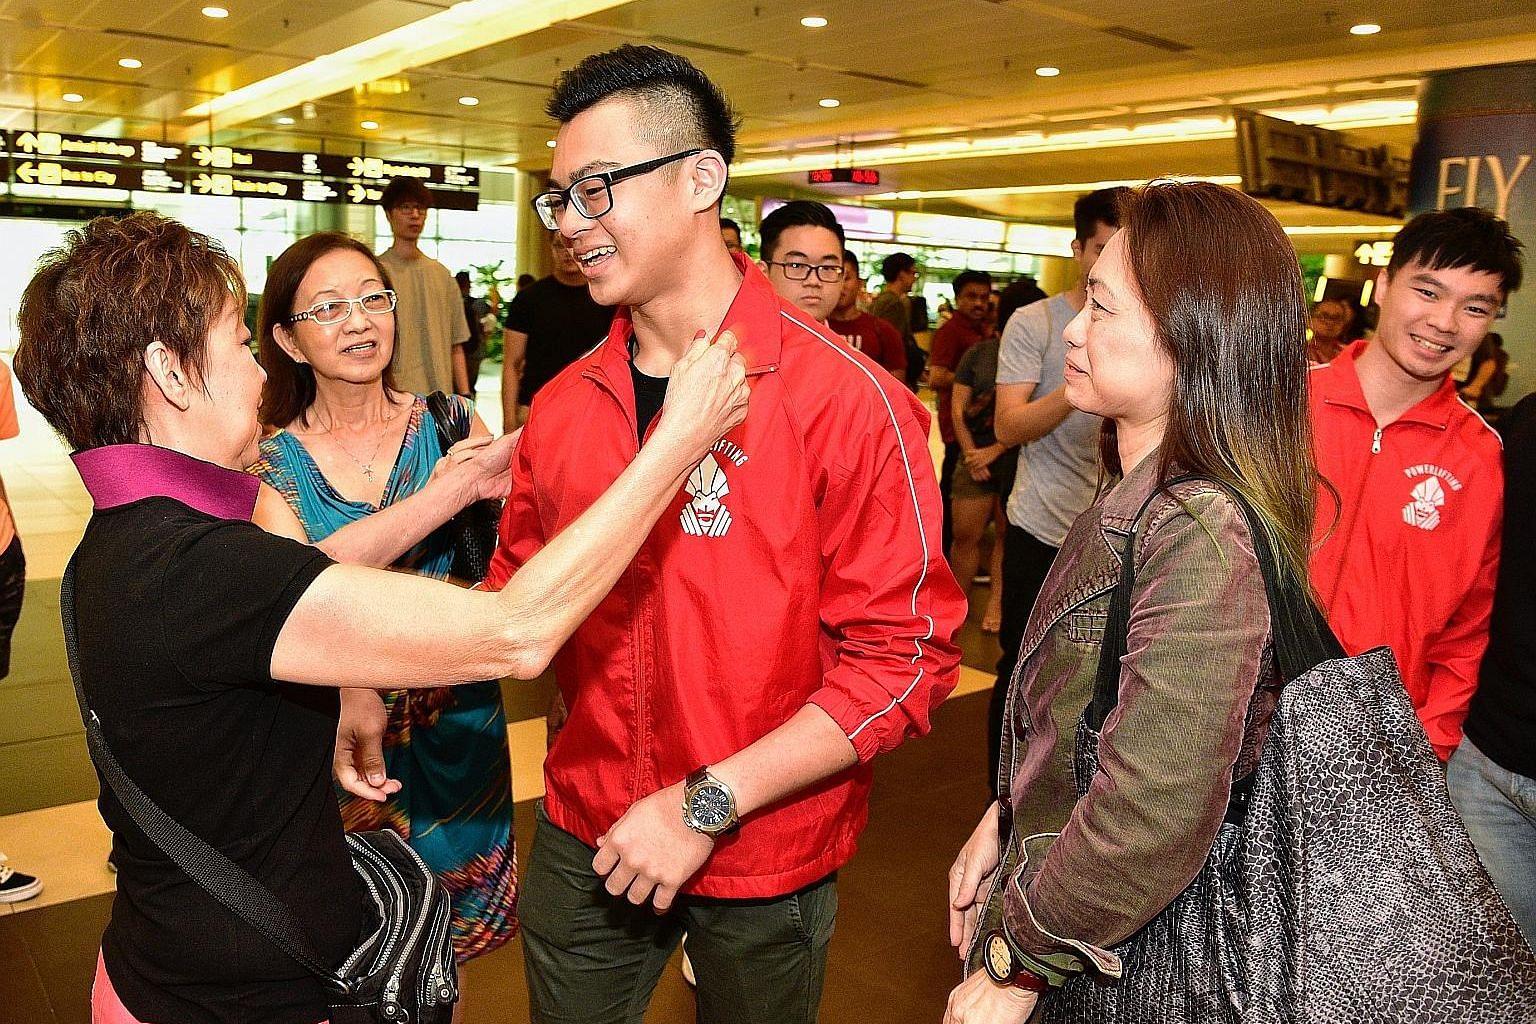 Powerlifter Matthew Yap greeting his grandaunt Mary Chua at the airport while his mother Ophelia Lim (second from right) looks on. Matthew returned with his brother Marcus (right). Singaporean Matthew Yap set a new world record with a 208kg squat in